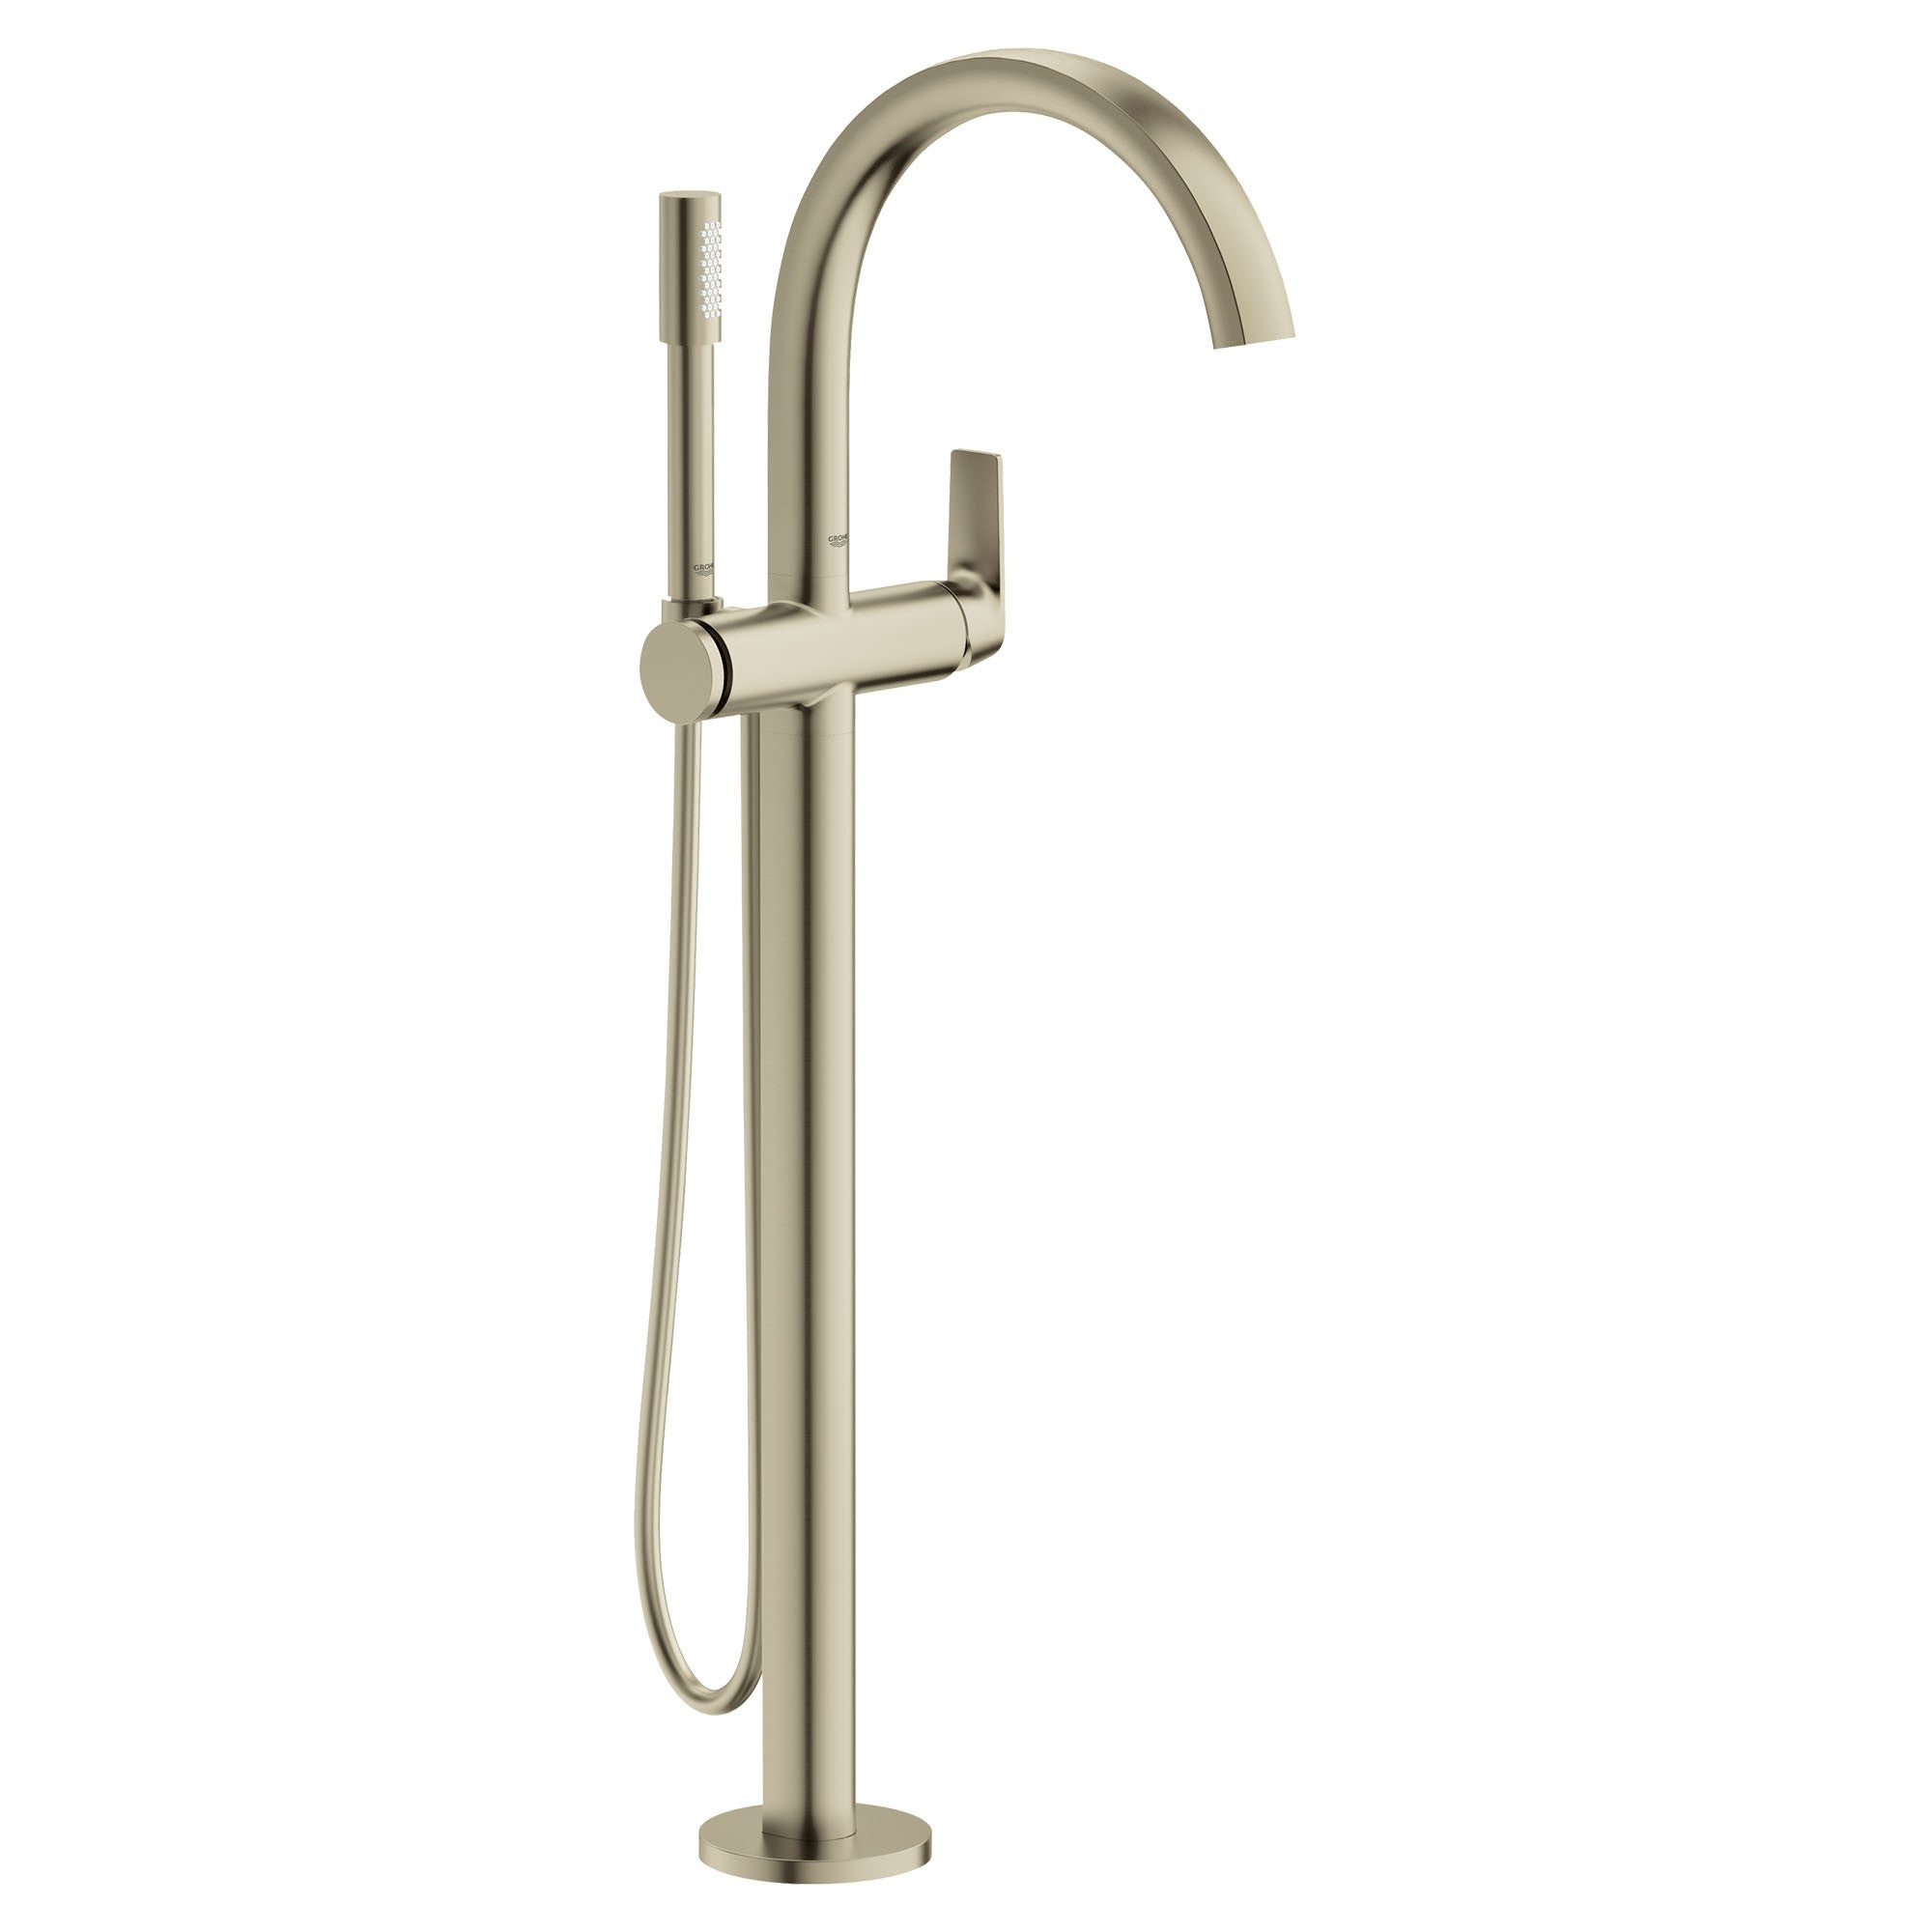 Grohe 29 302  Defined Free Standing Tub Filler with Built-In Diverter and Hand Shower (Brushed Nickel)